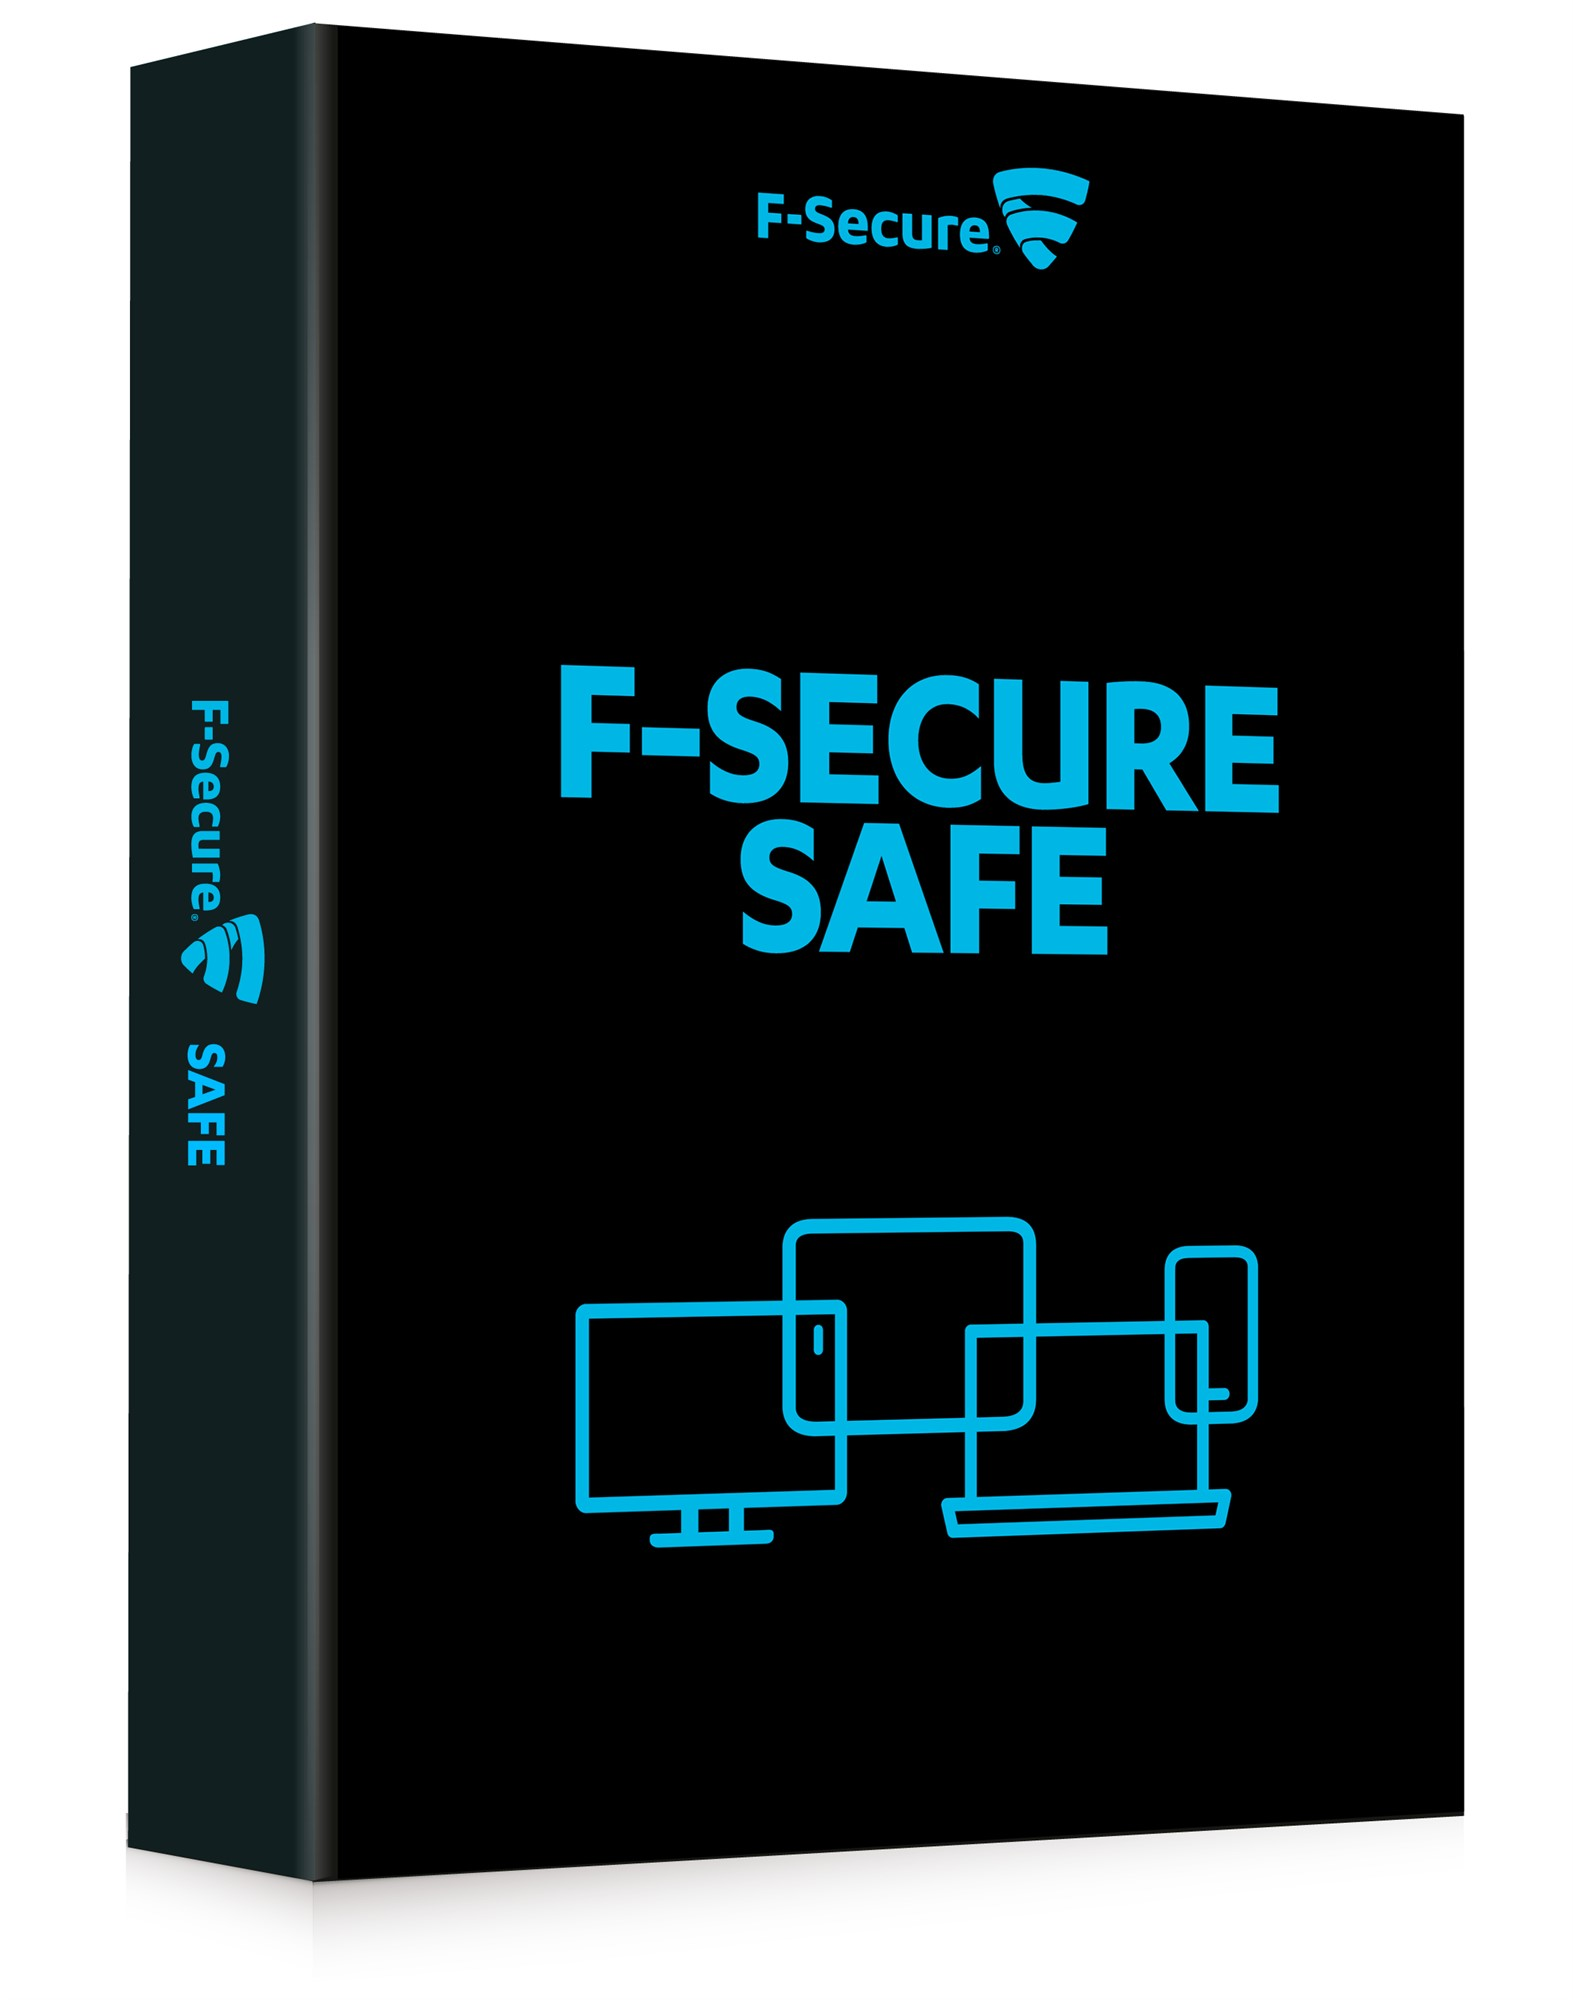 F-SECURE FCFXBR2N003E1 SAFE FULL LICENSE 2YEAR(S) MULTILINGUAL